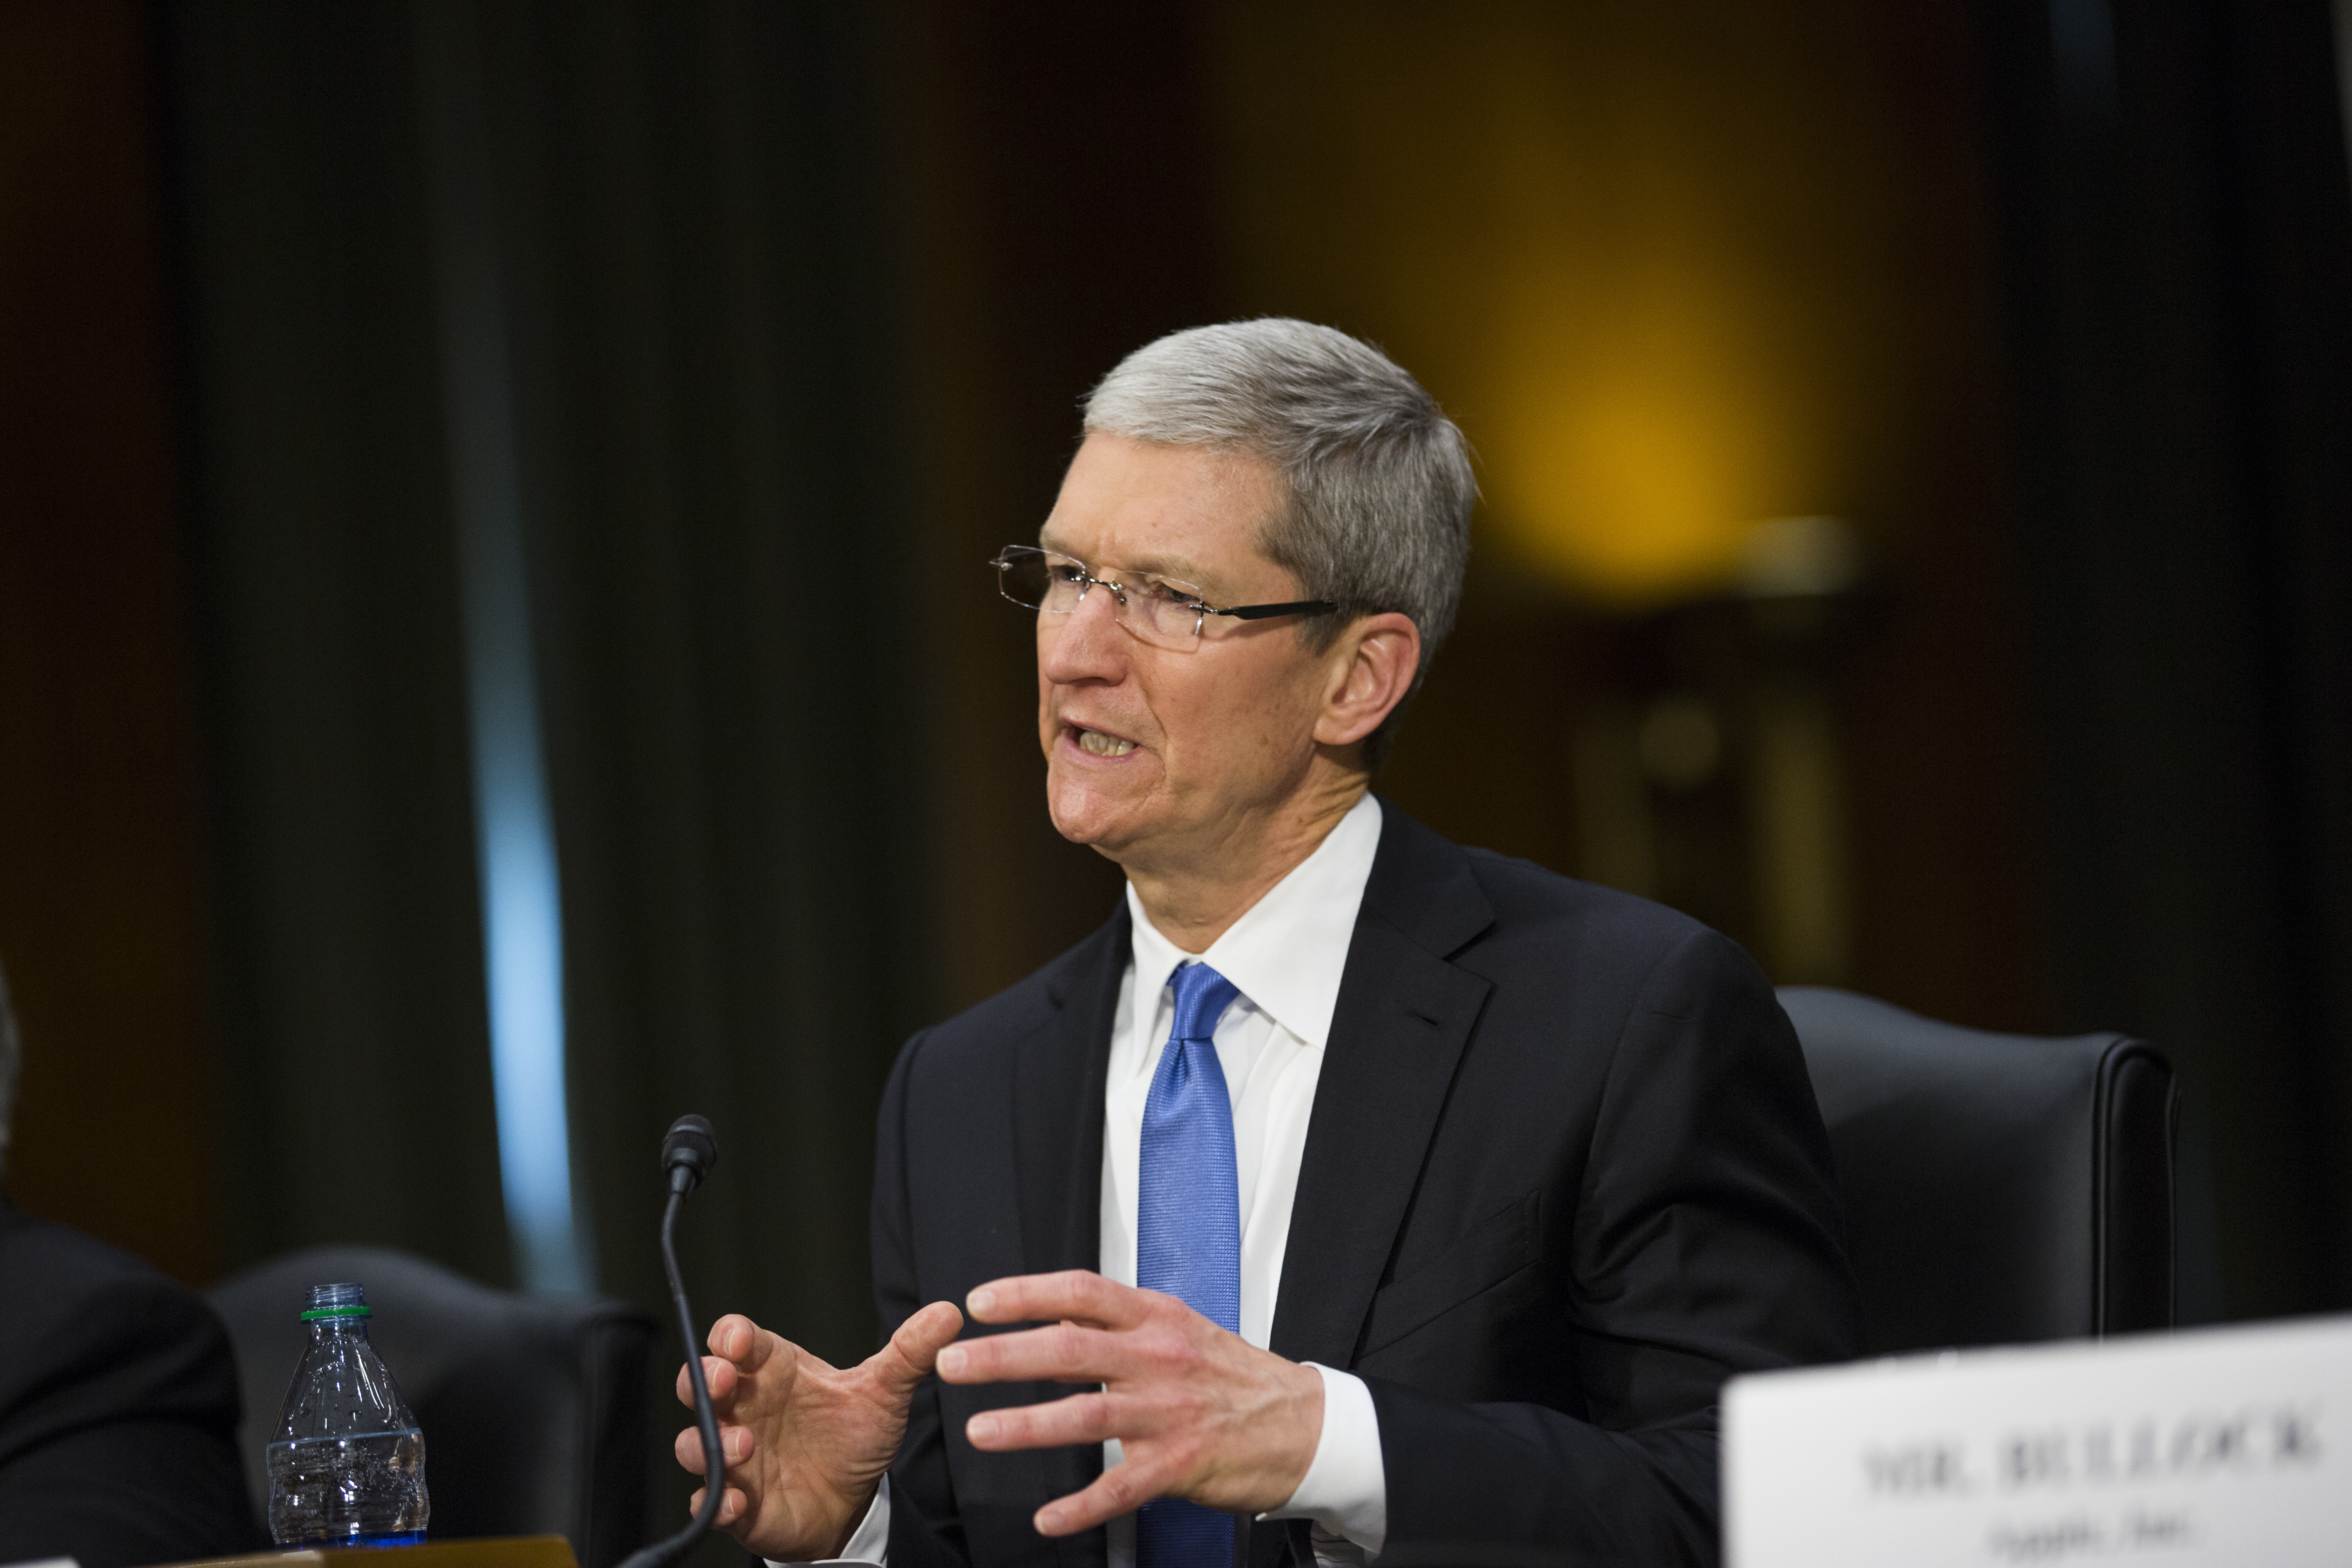 Big tech's reckoning starts with an antitrust committee